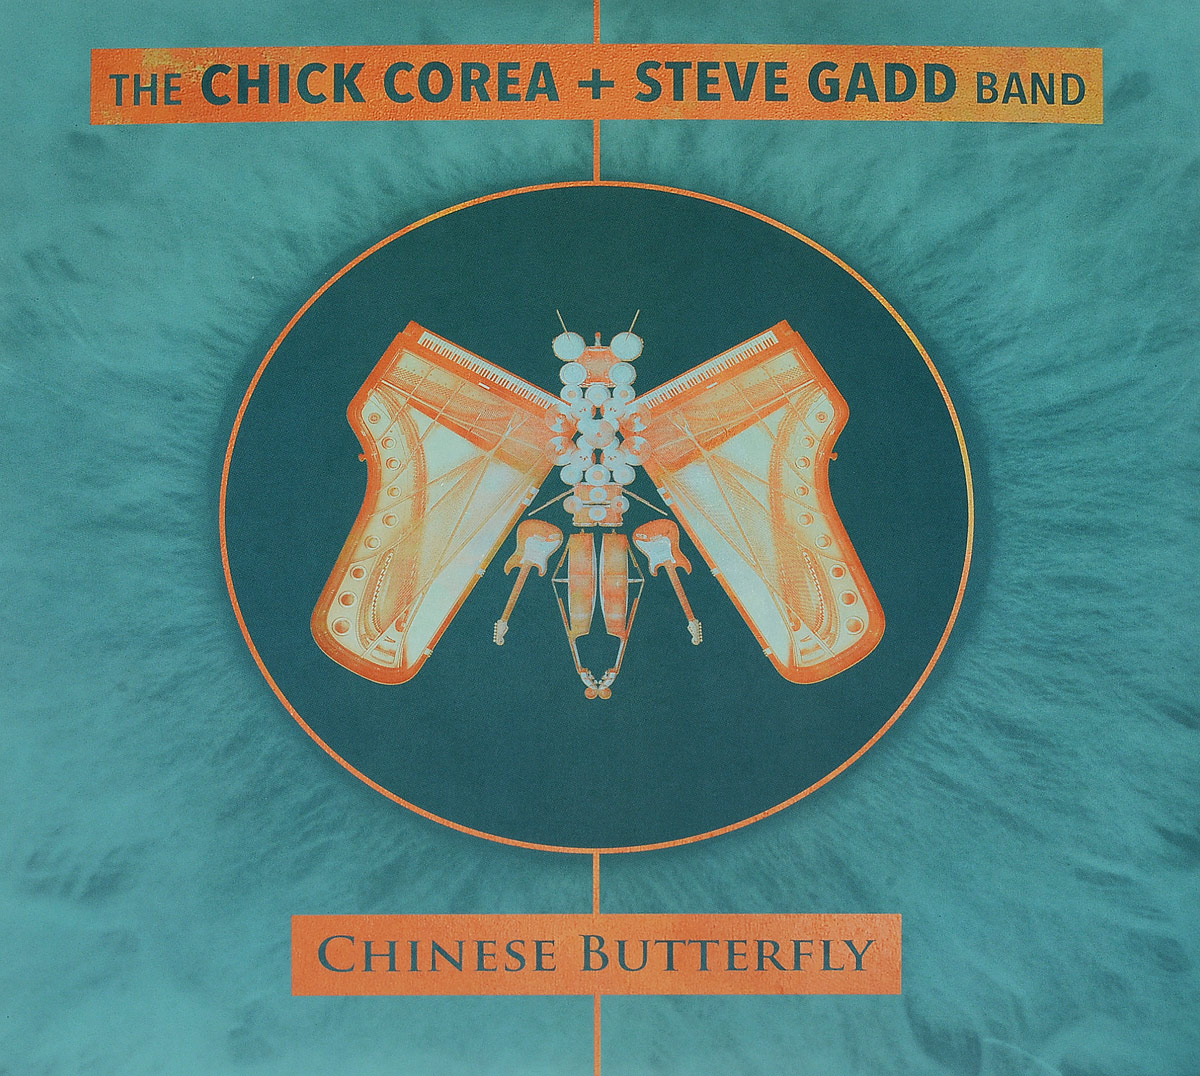 чик кориа chick corea The Chick Corea + Steve Gadd Band The Chick Corea + Steve Gadd Band. Chinese Butterfly (3 LP)